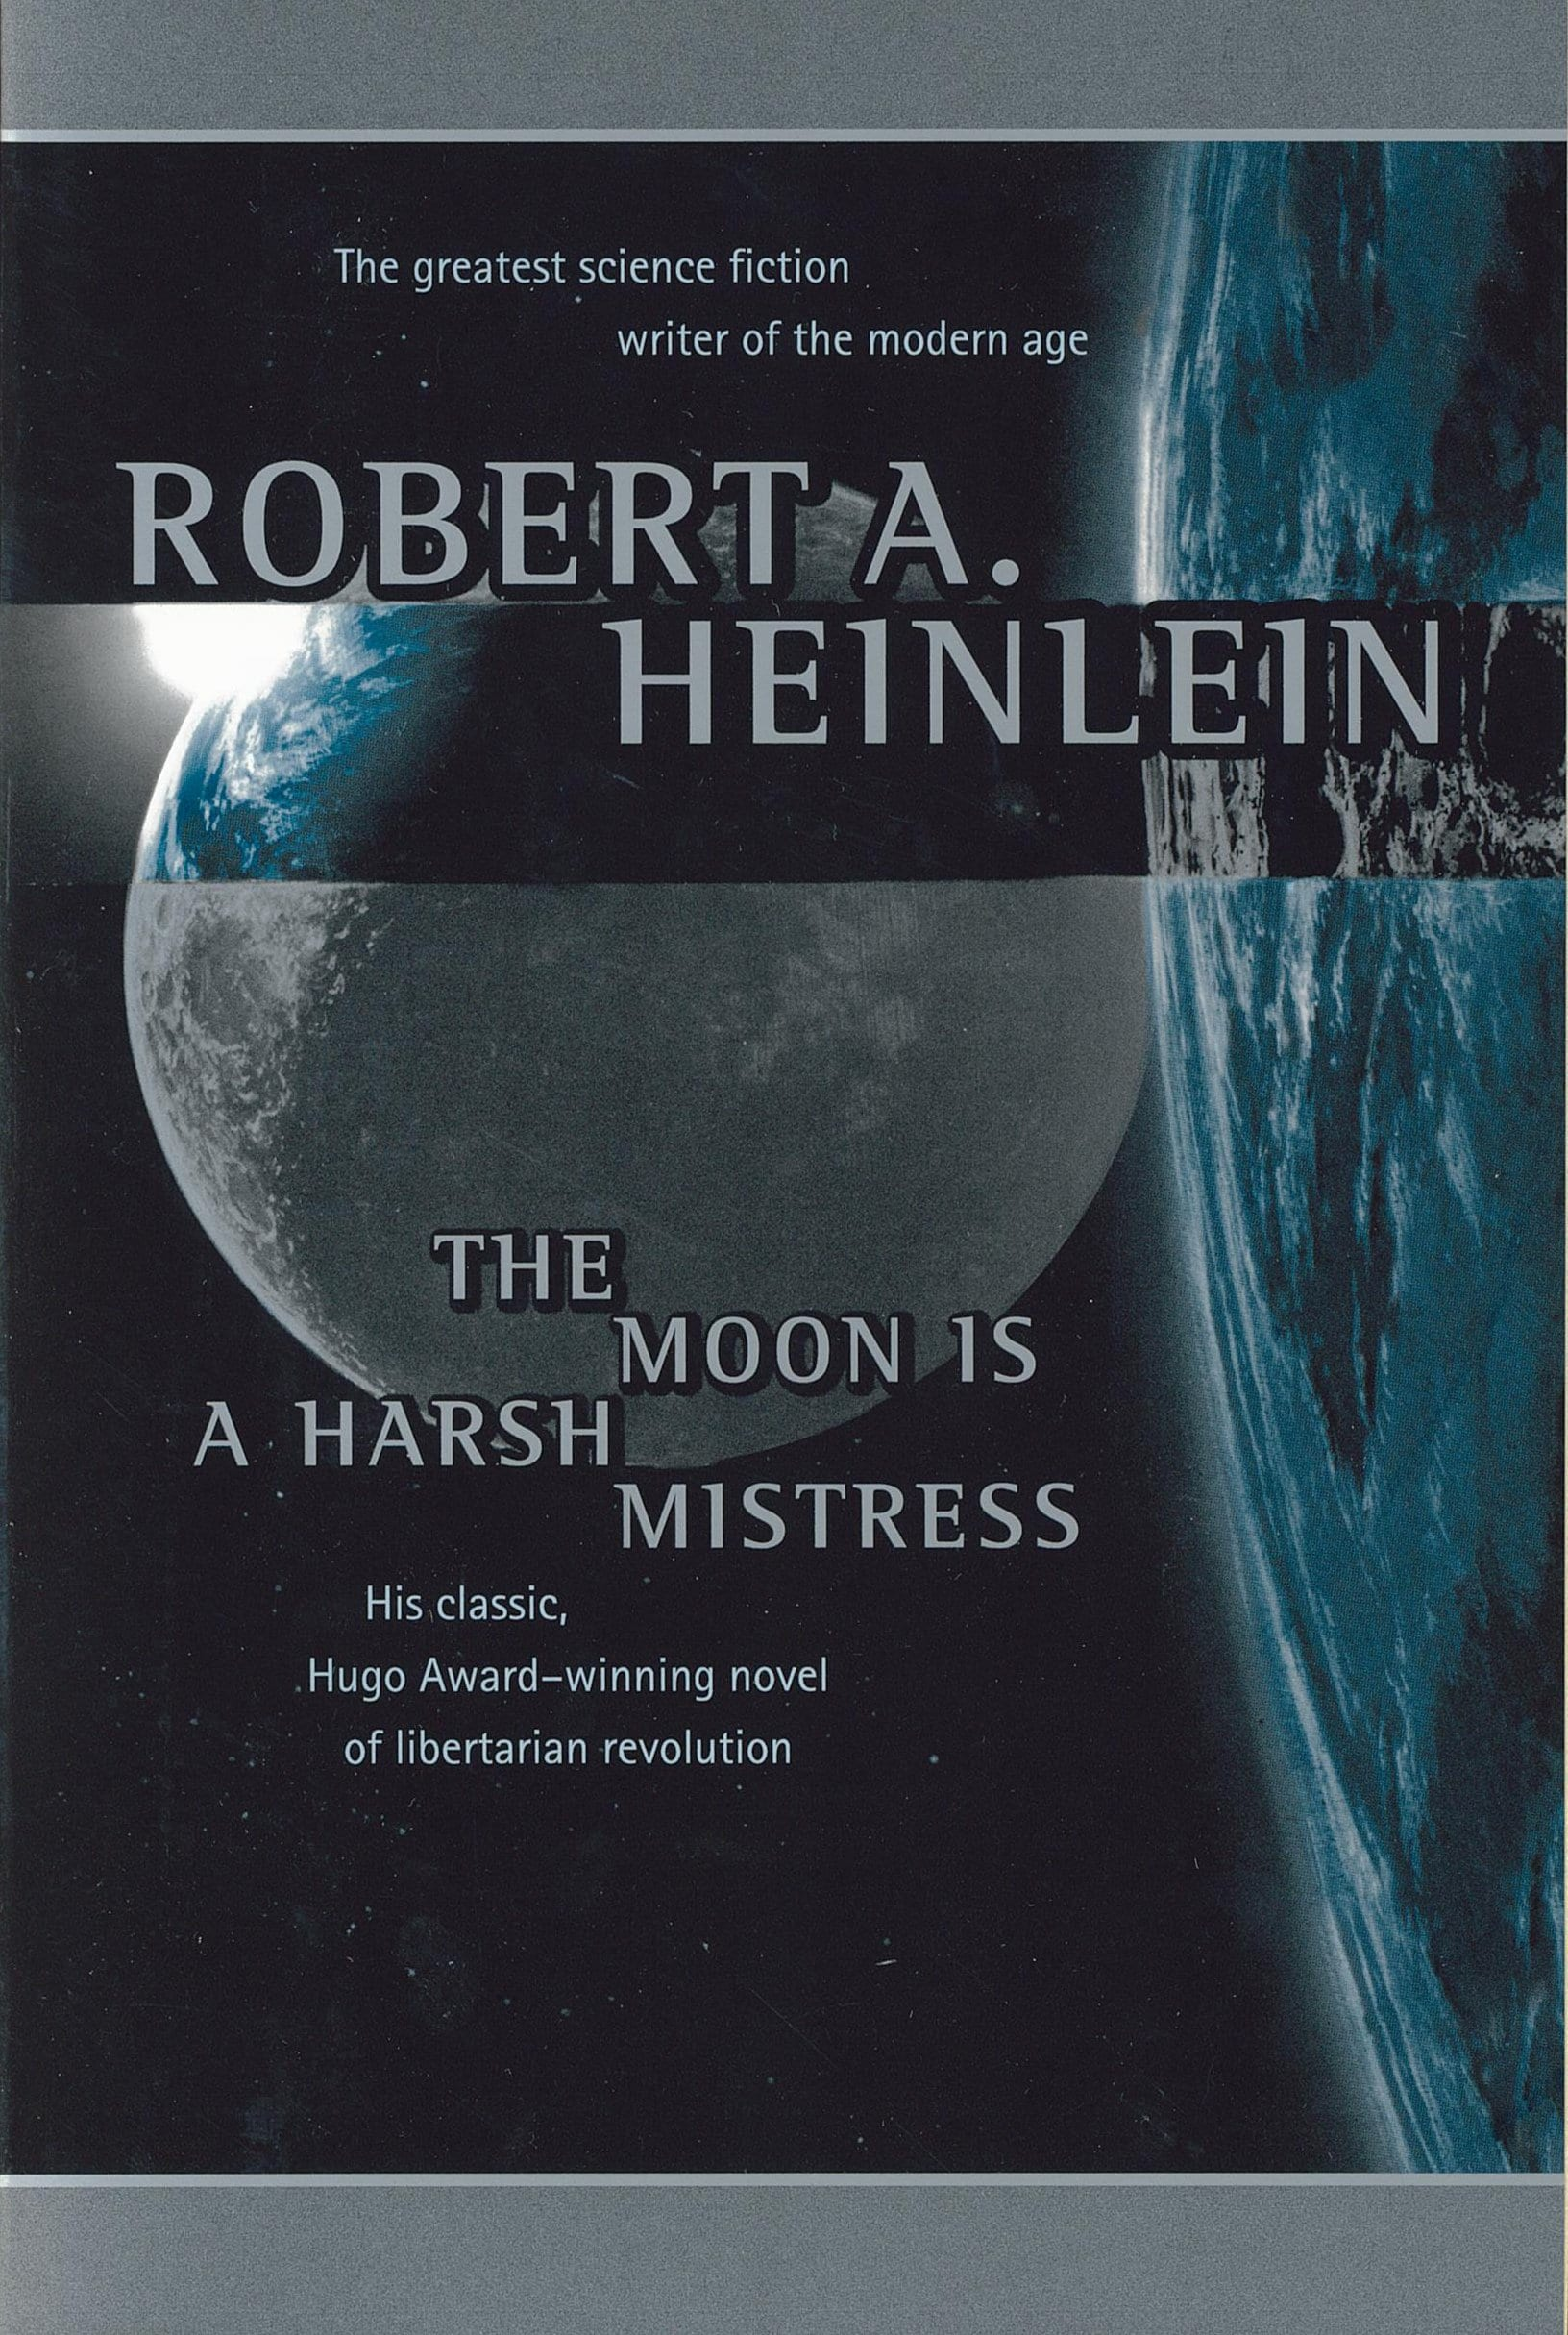 The Moon Is A Harsh Mistress Book Review By Ron Fortier